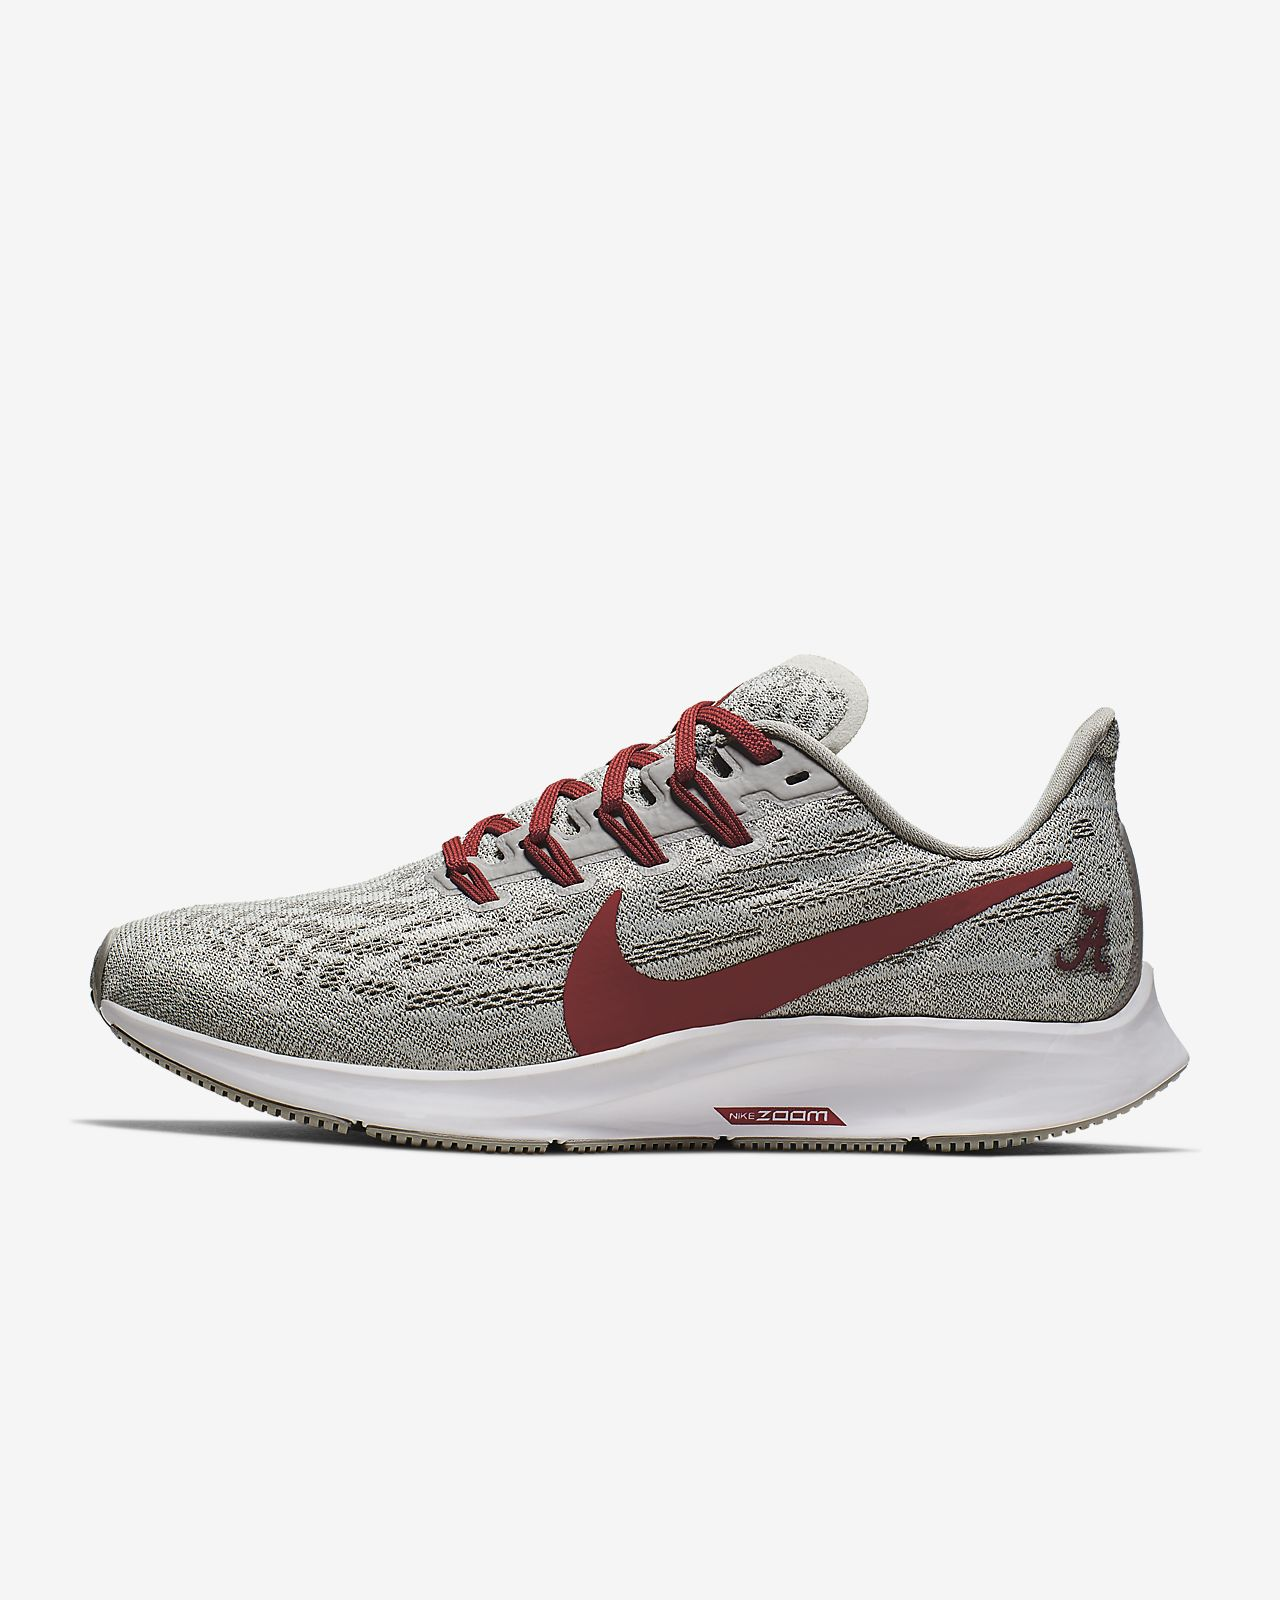 Nike Air Zoom Pegasus 36 (Alabama) Women's Running Shoe